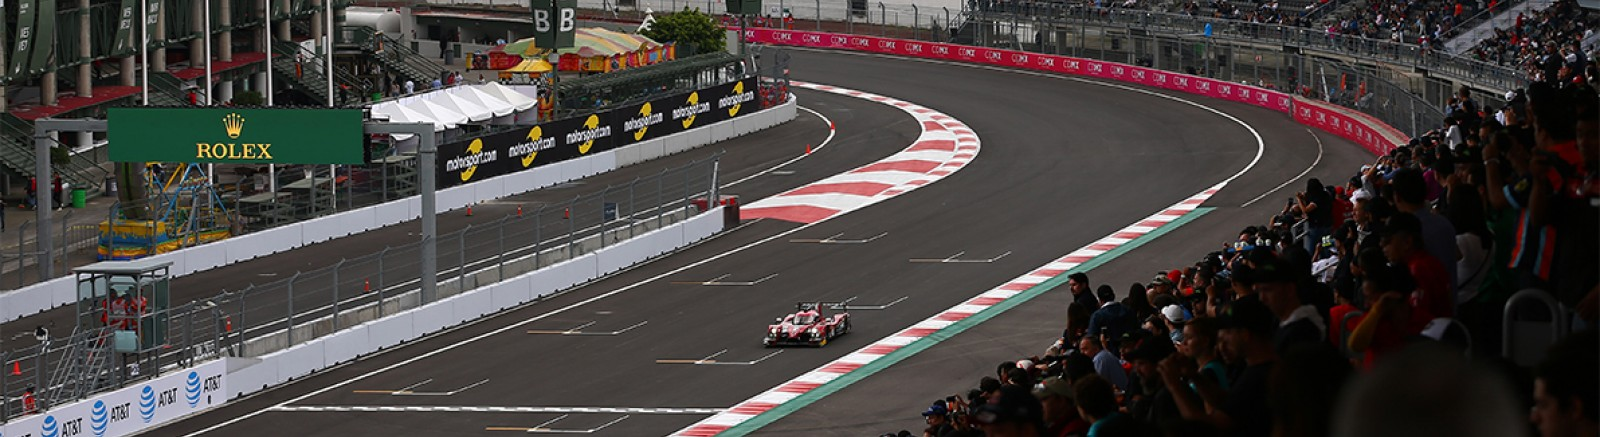 WEC, 6 Hours of Mexico, Motorsport, FIA, Mexico